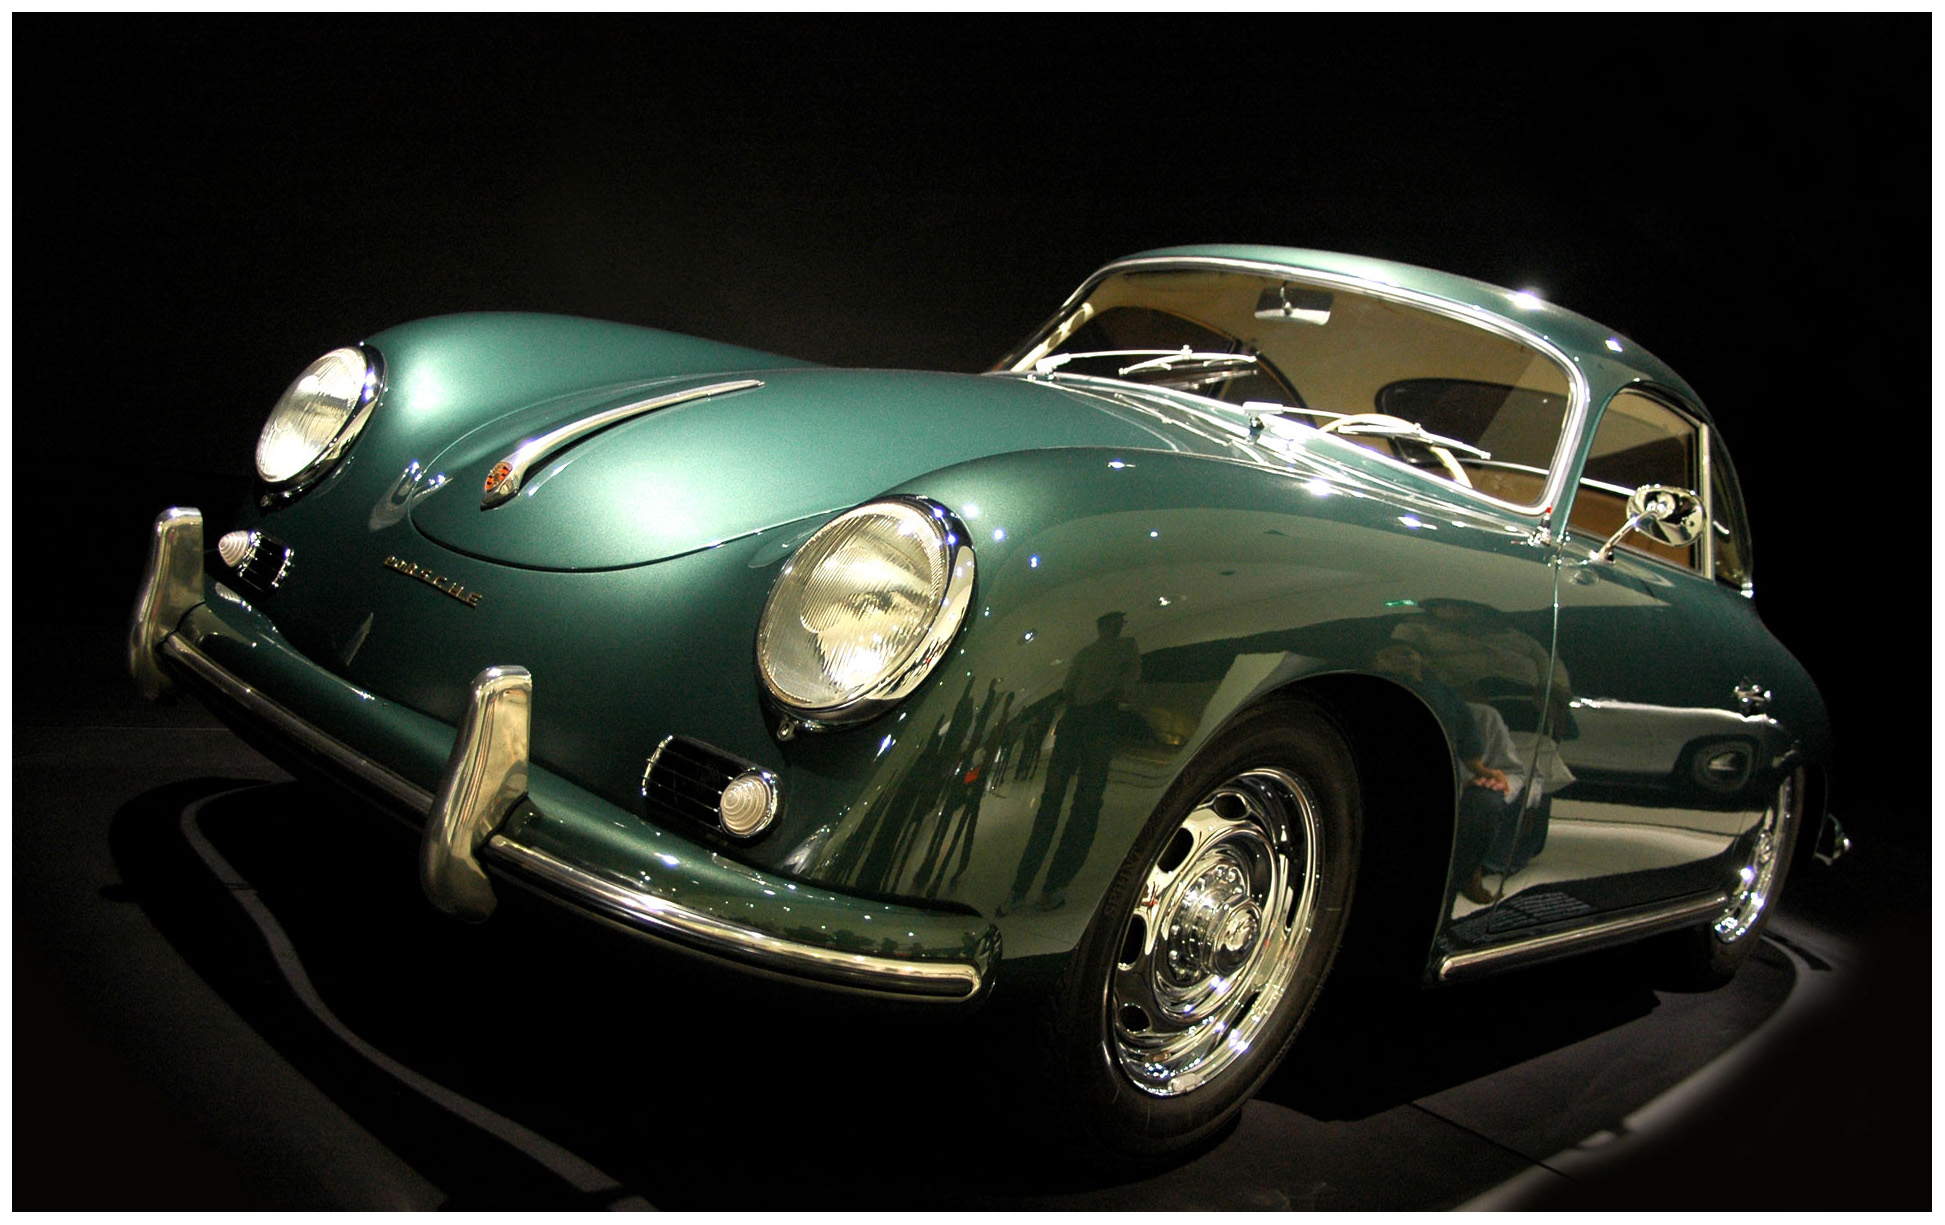 1956 porsche 356 a 1600 super coupe pleasurephoto. Black Bedroom Furniture Sets. Home Design Ideas